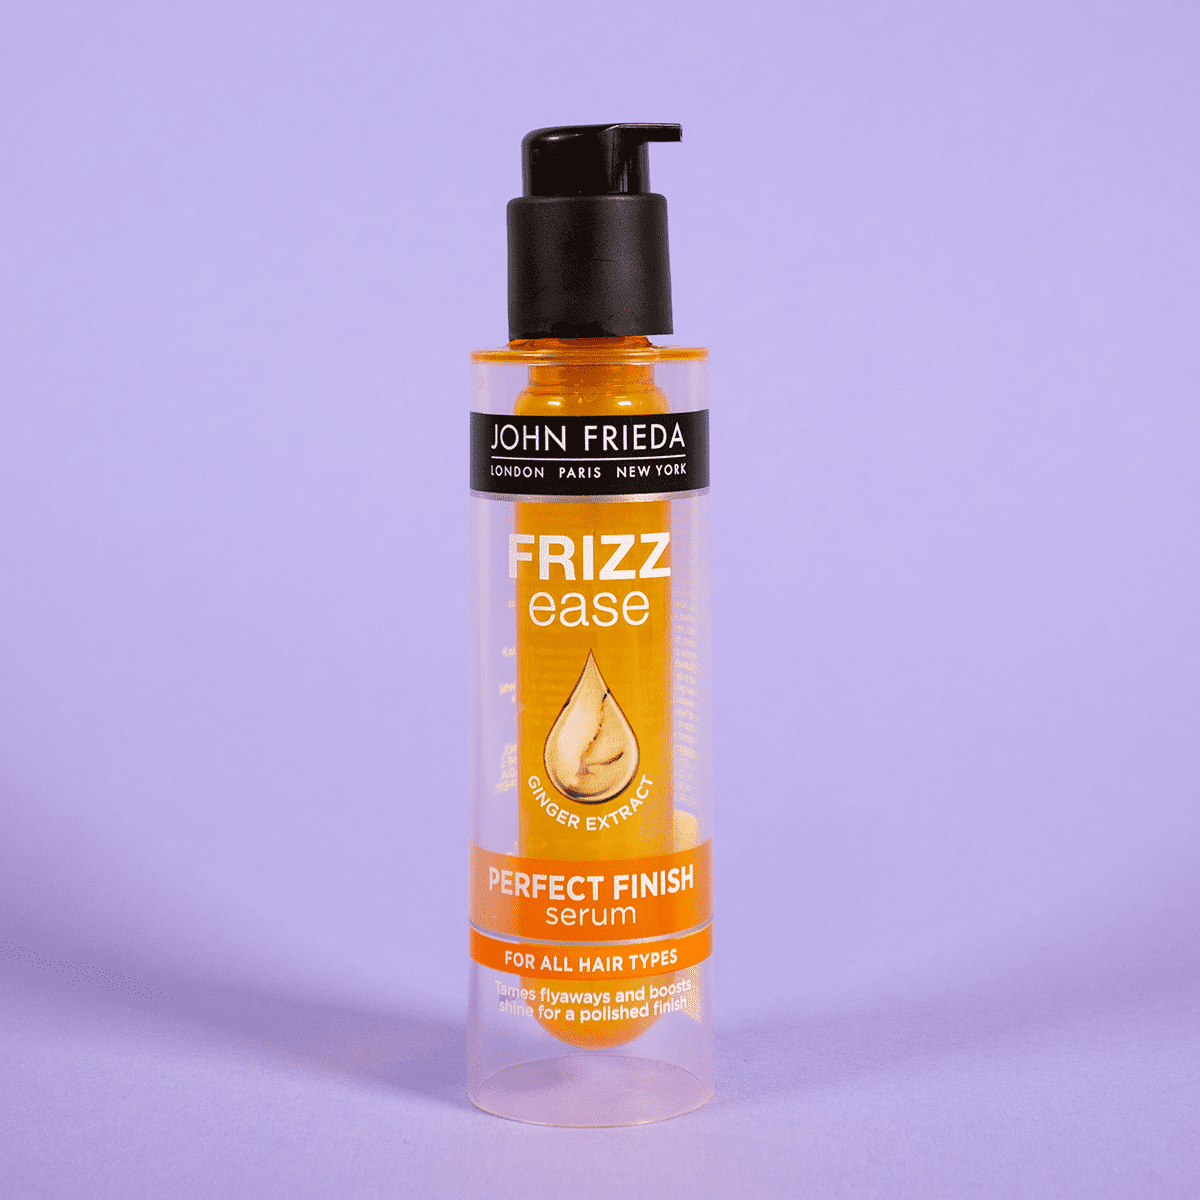 John Frieda Frizz Ease Polishing Serum - finishing serum for flyaways